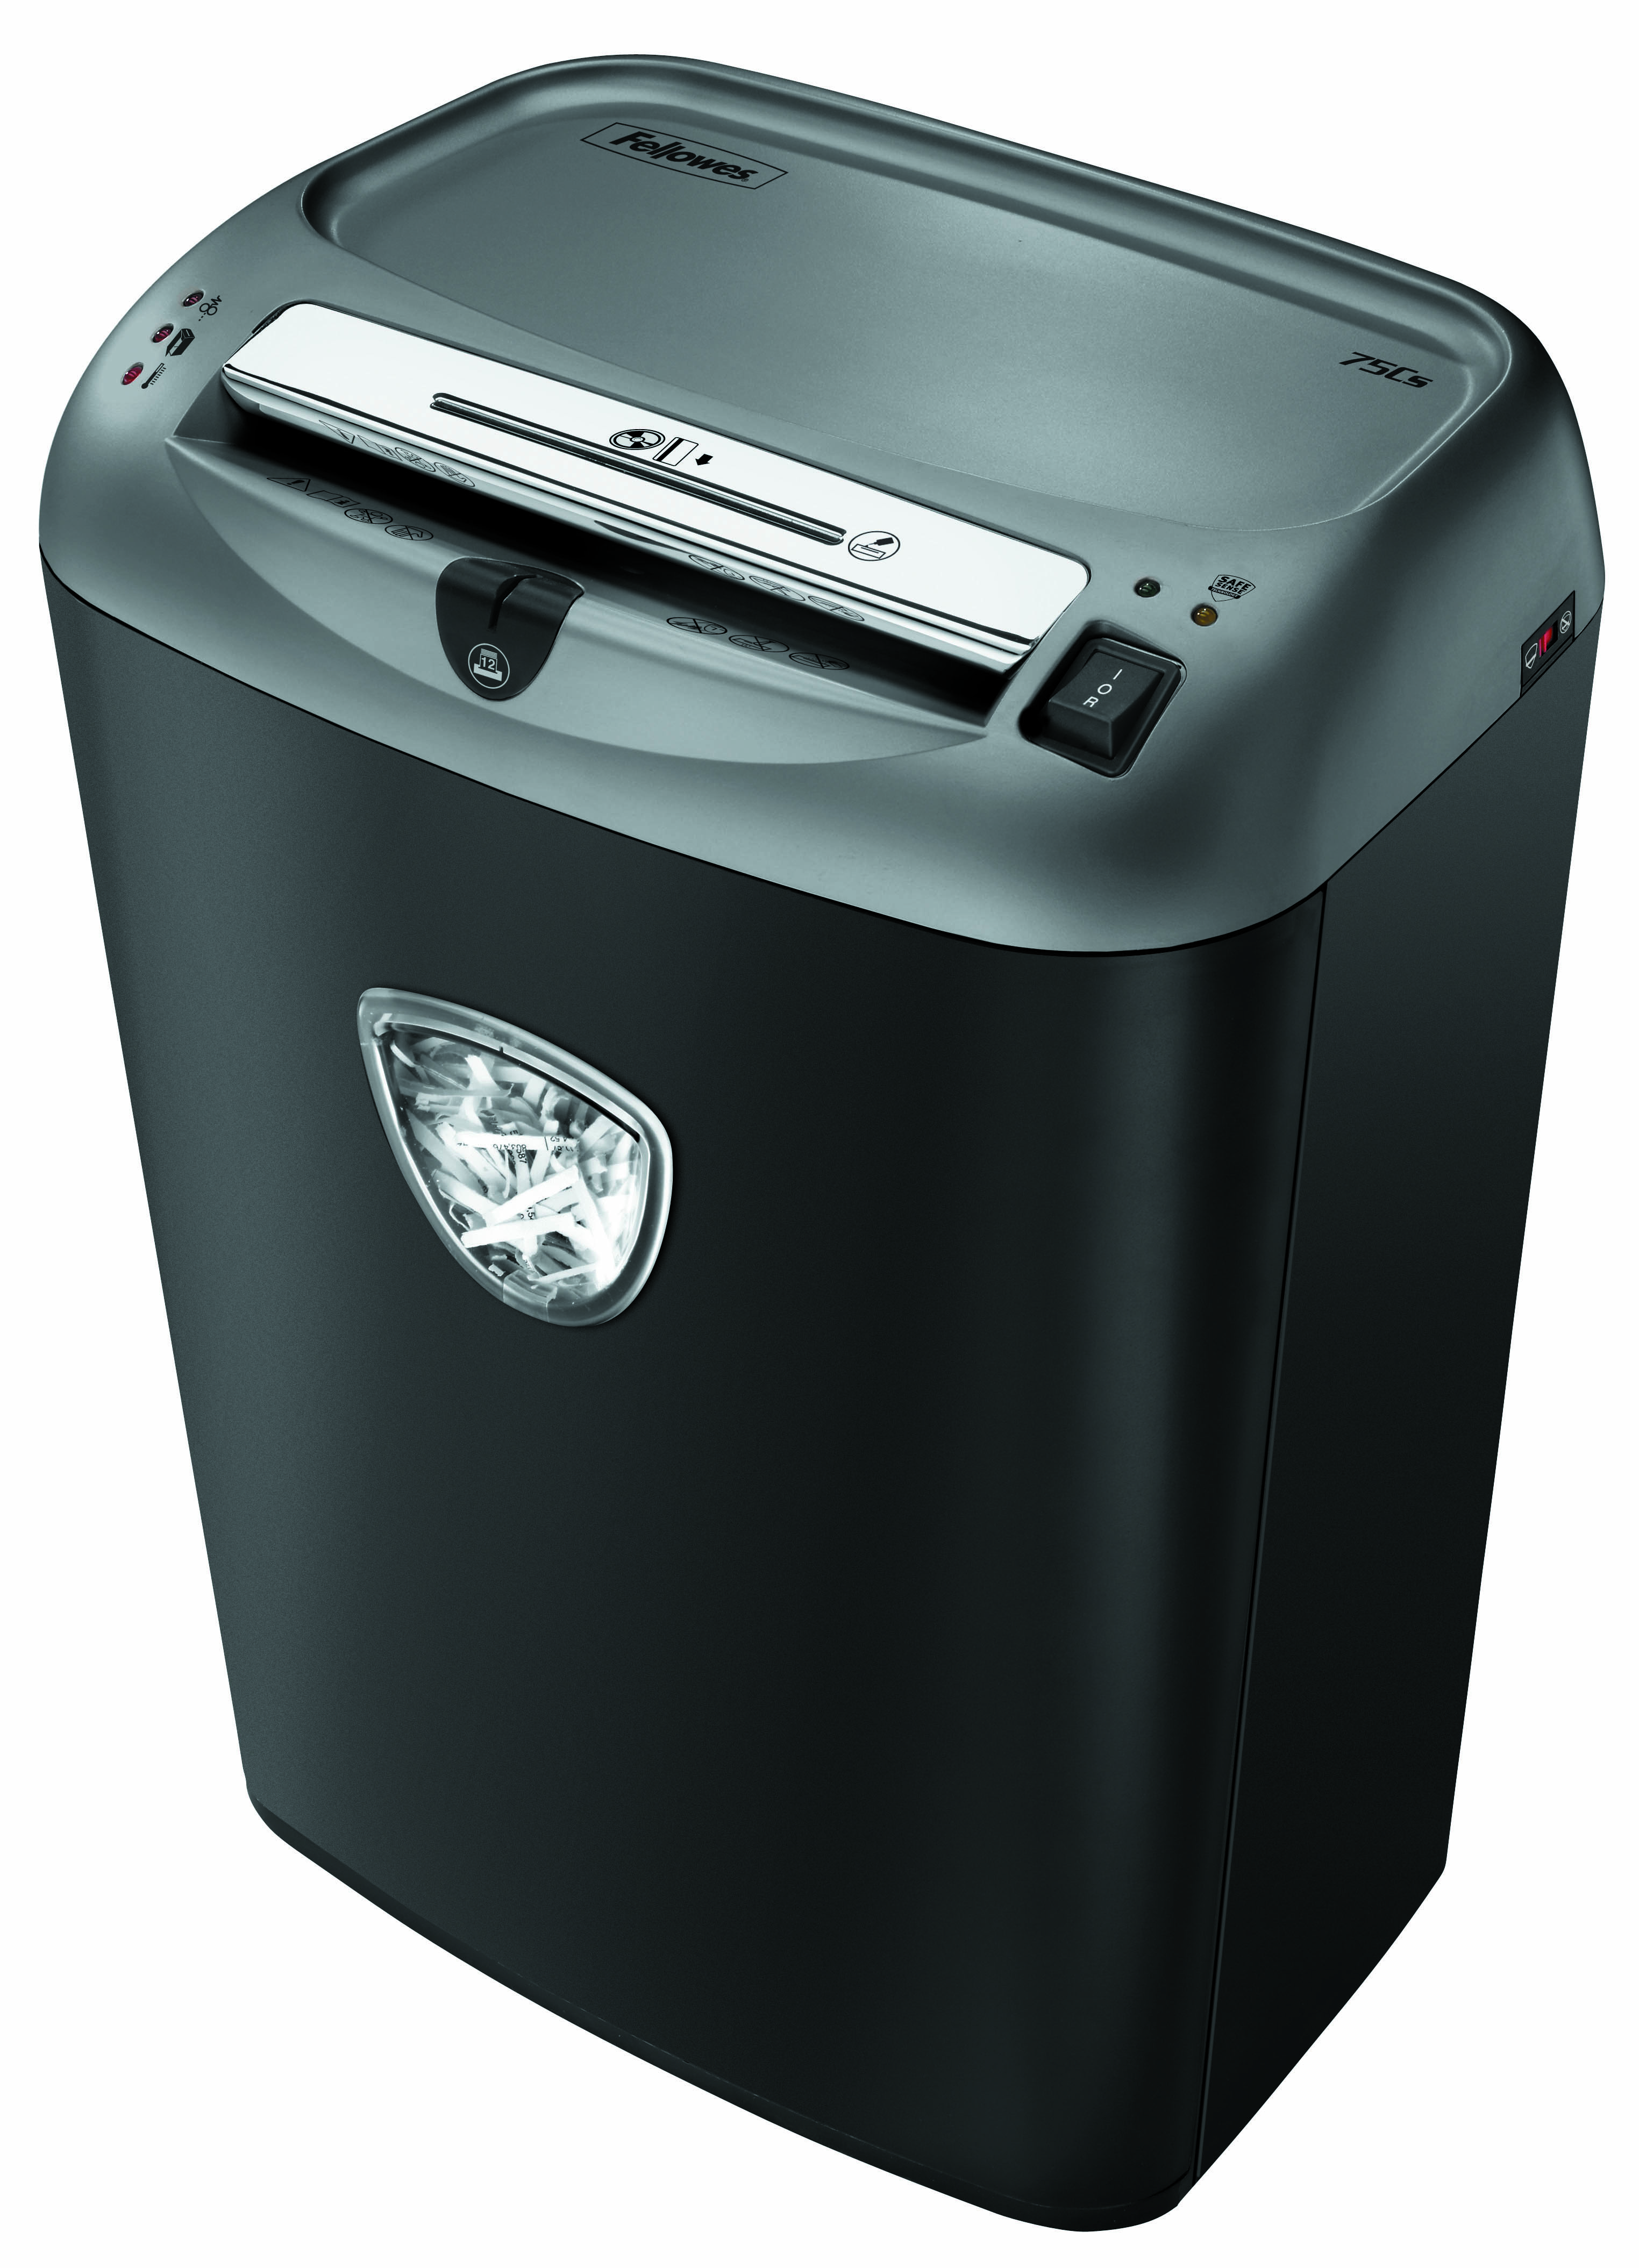 Destruidora de Papel Fellowes 75Cs, 12 Fls, 27L, CD/DVDs